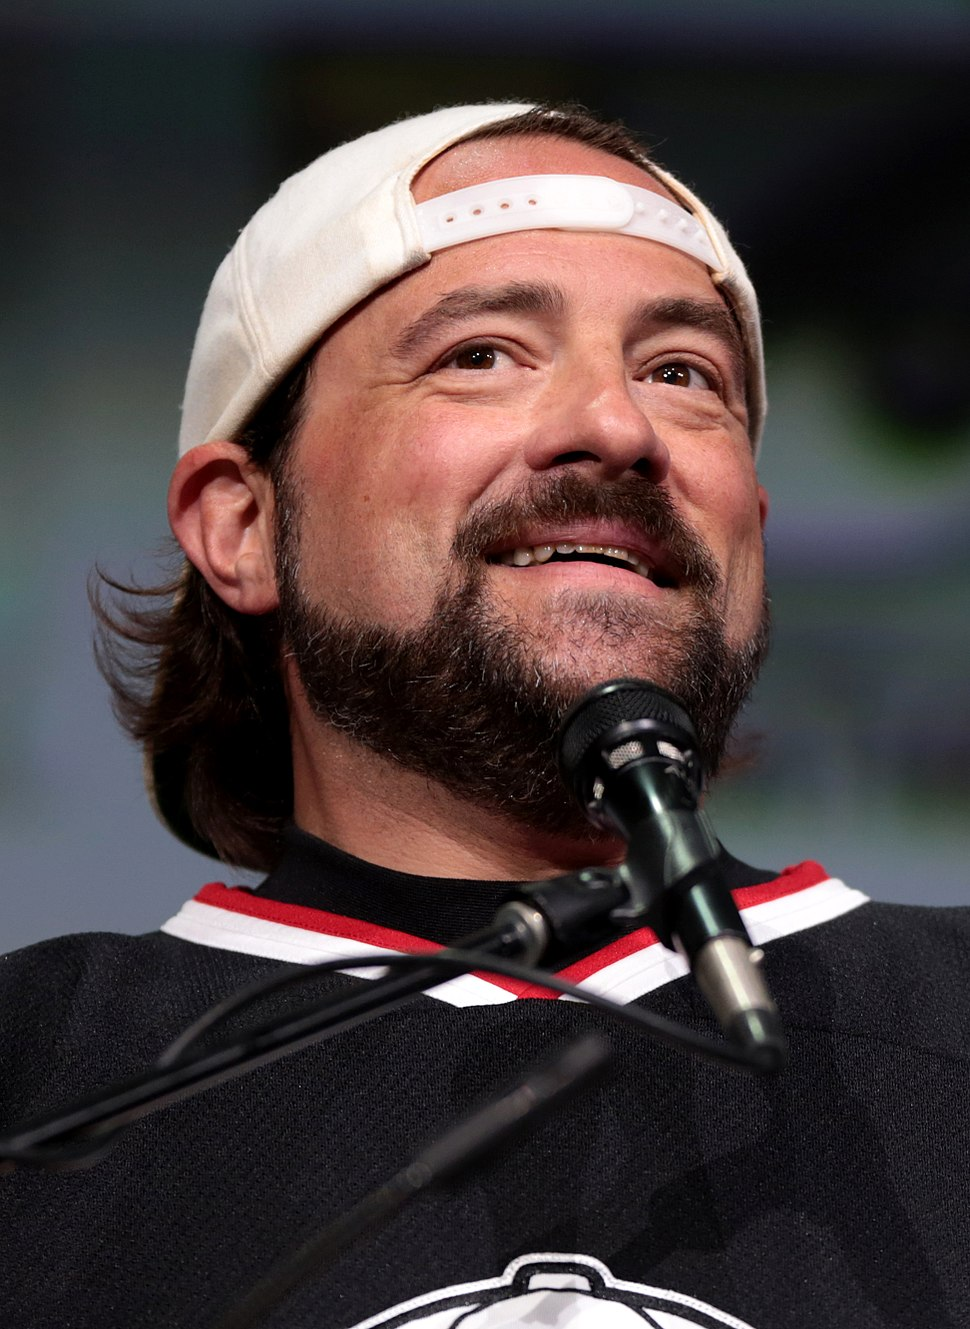 Kevin Smith by Gage Skidmore 2